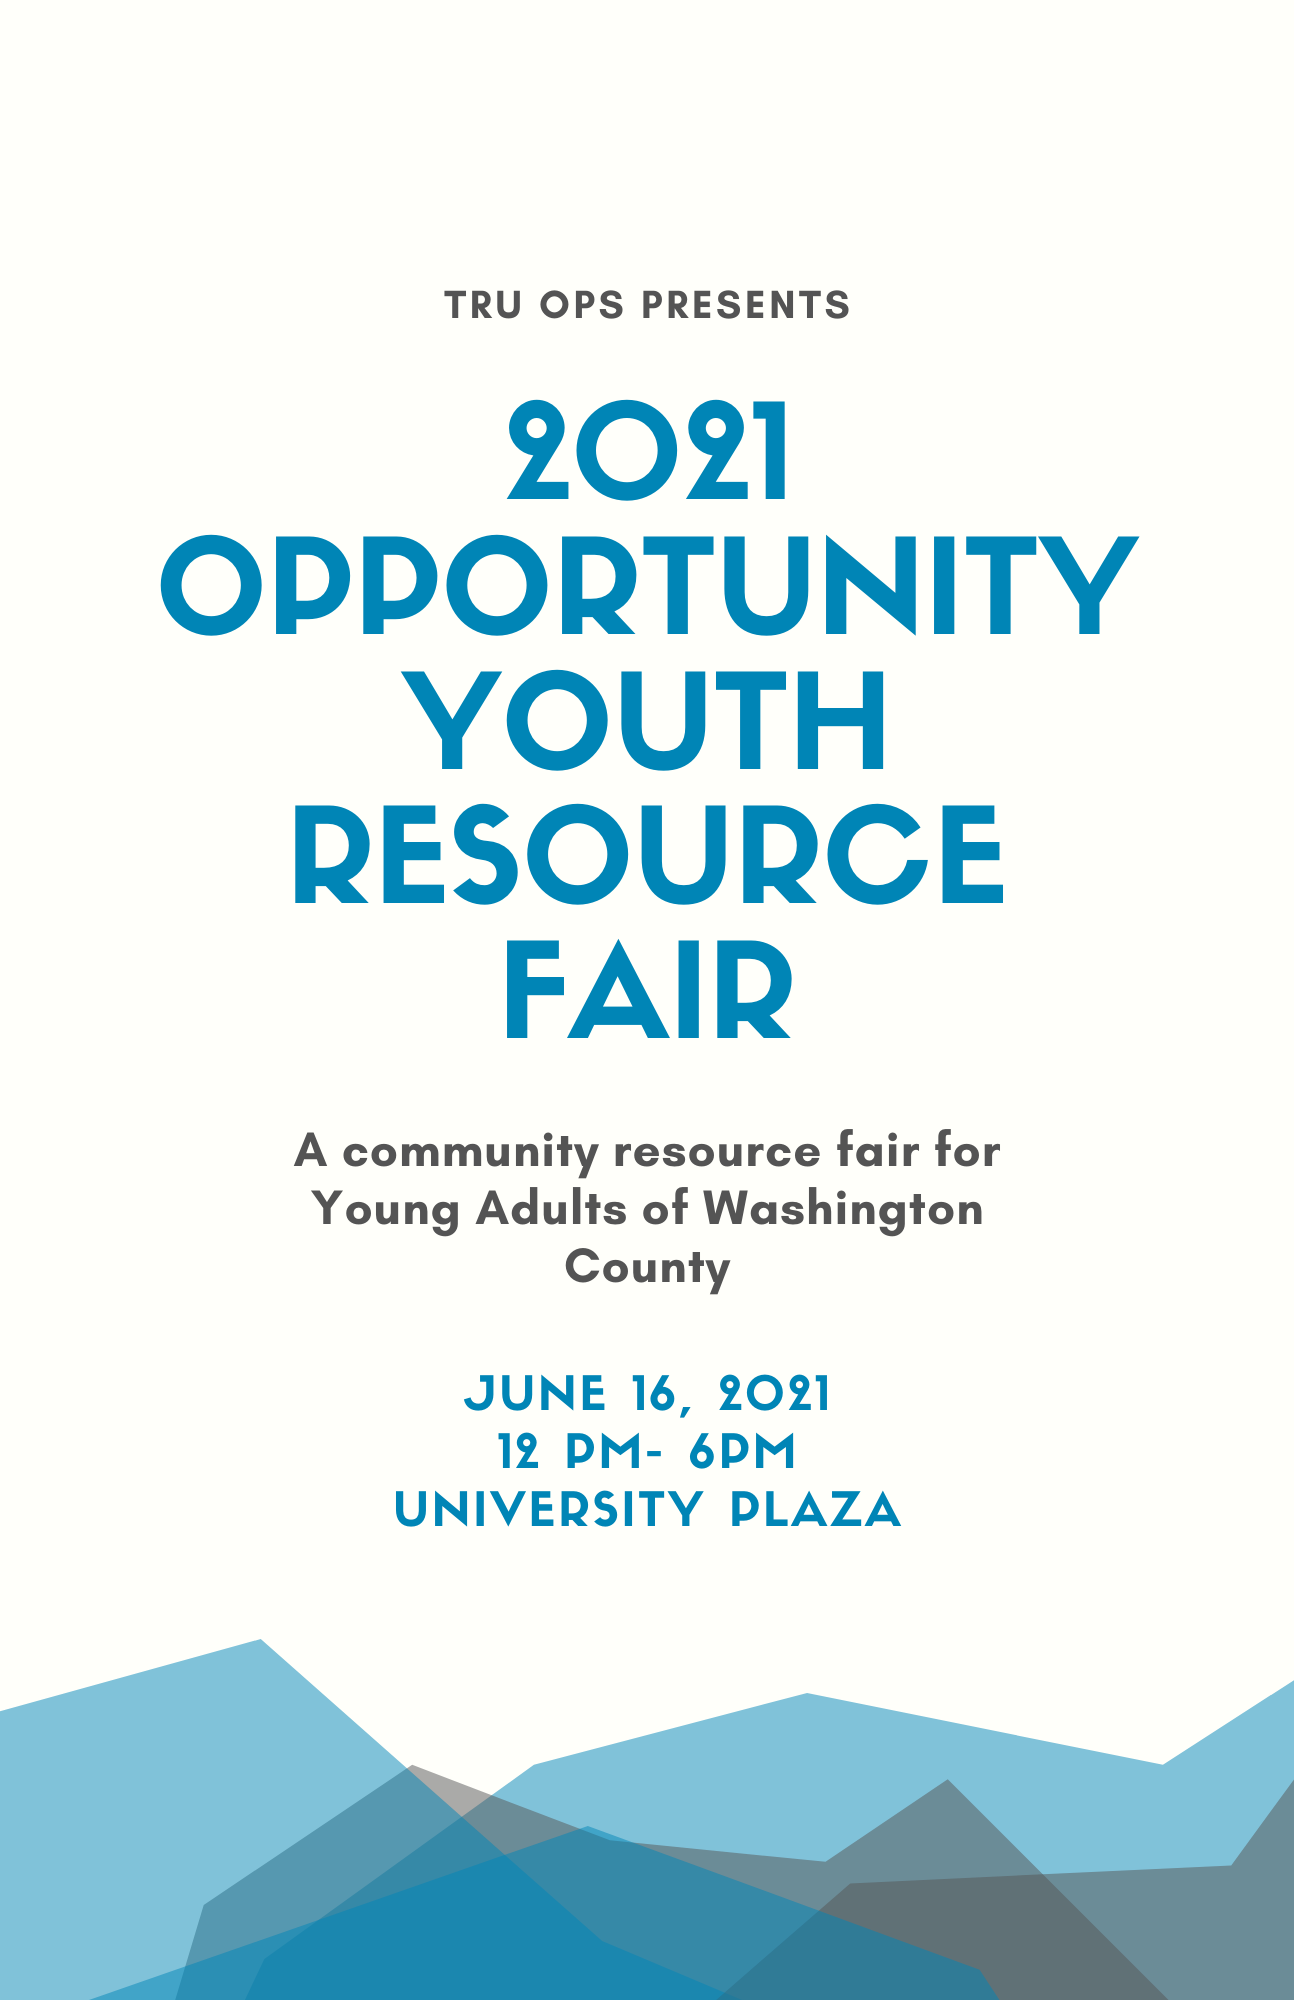 opportunity youth resource fair flyer